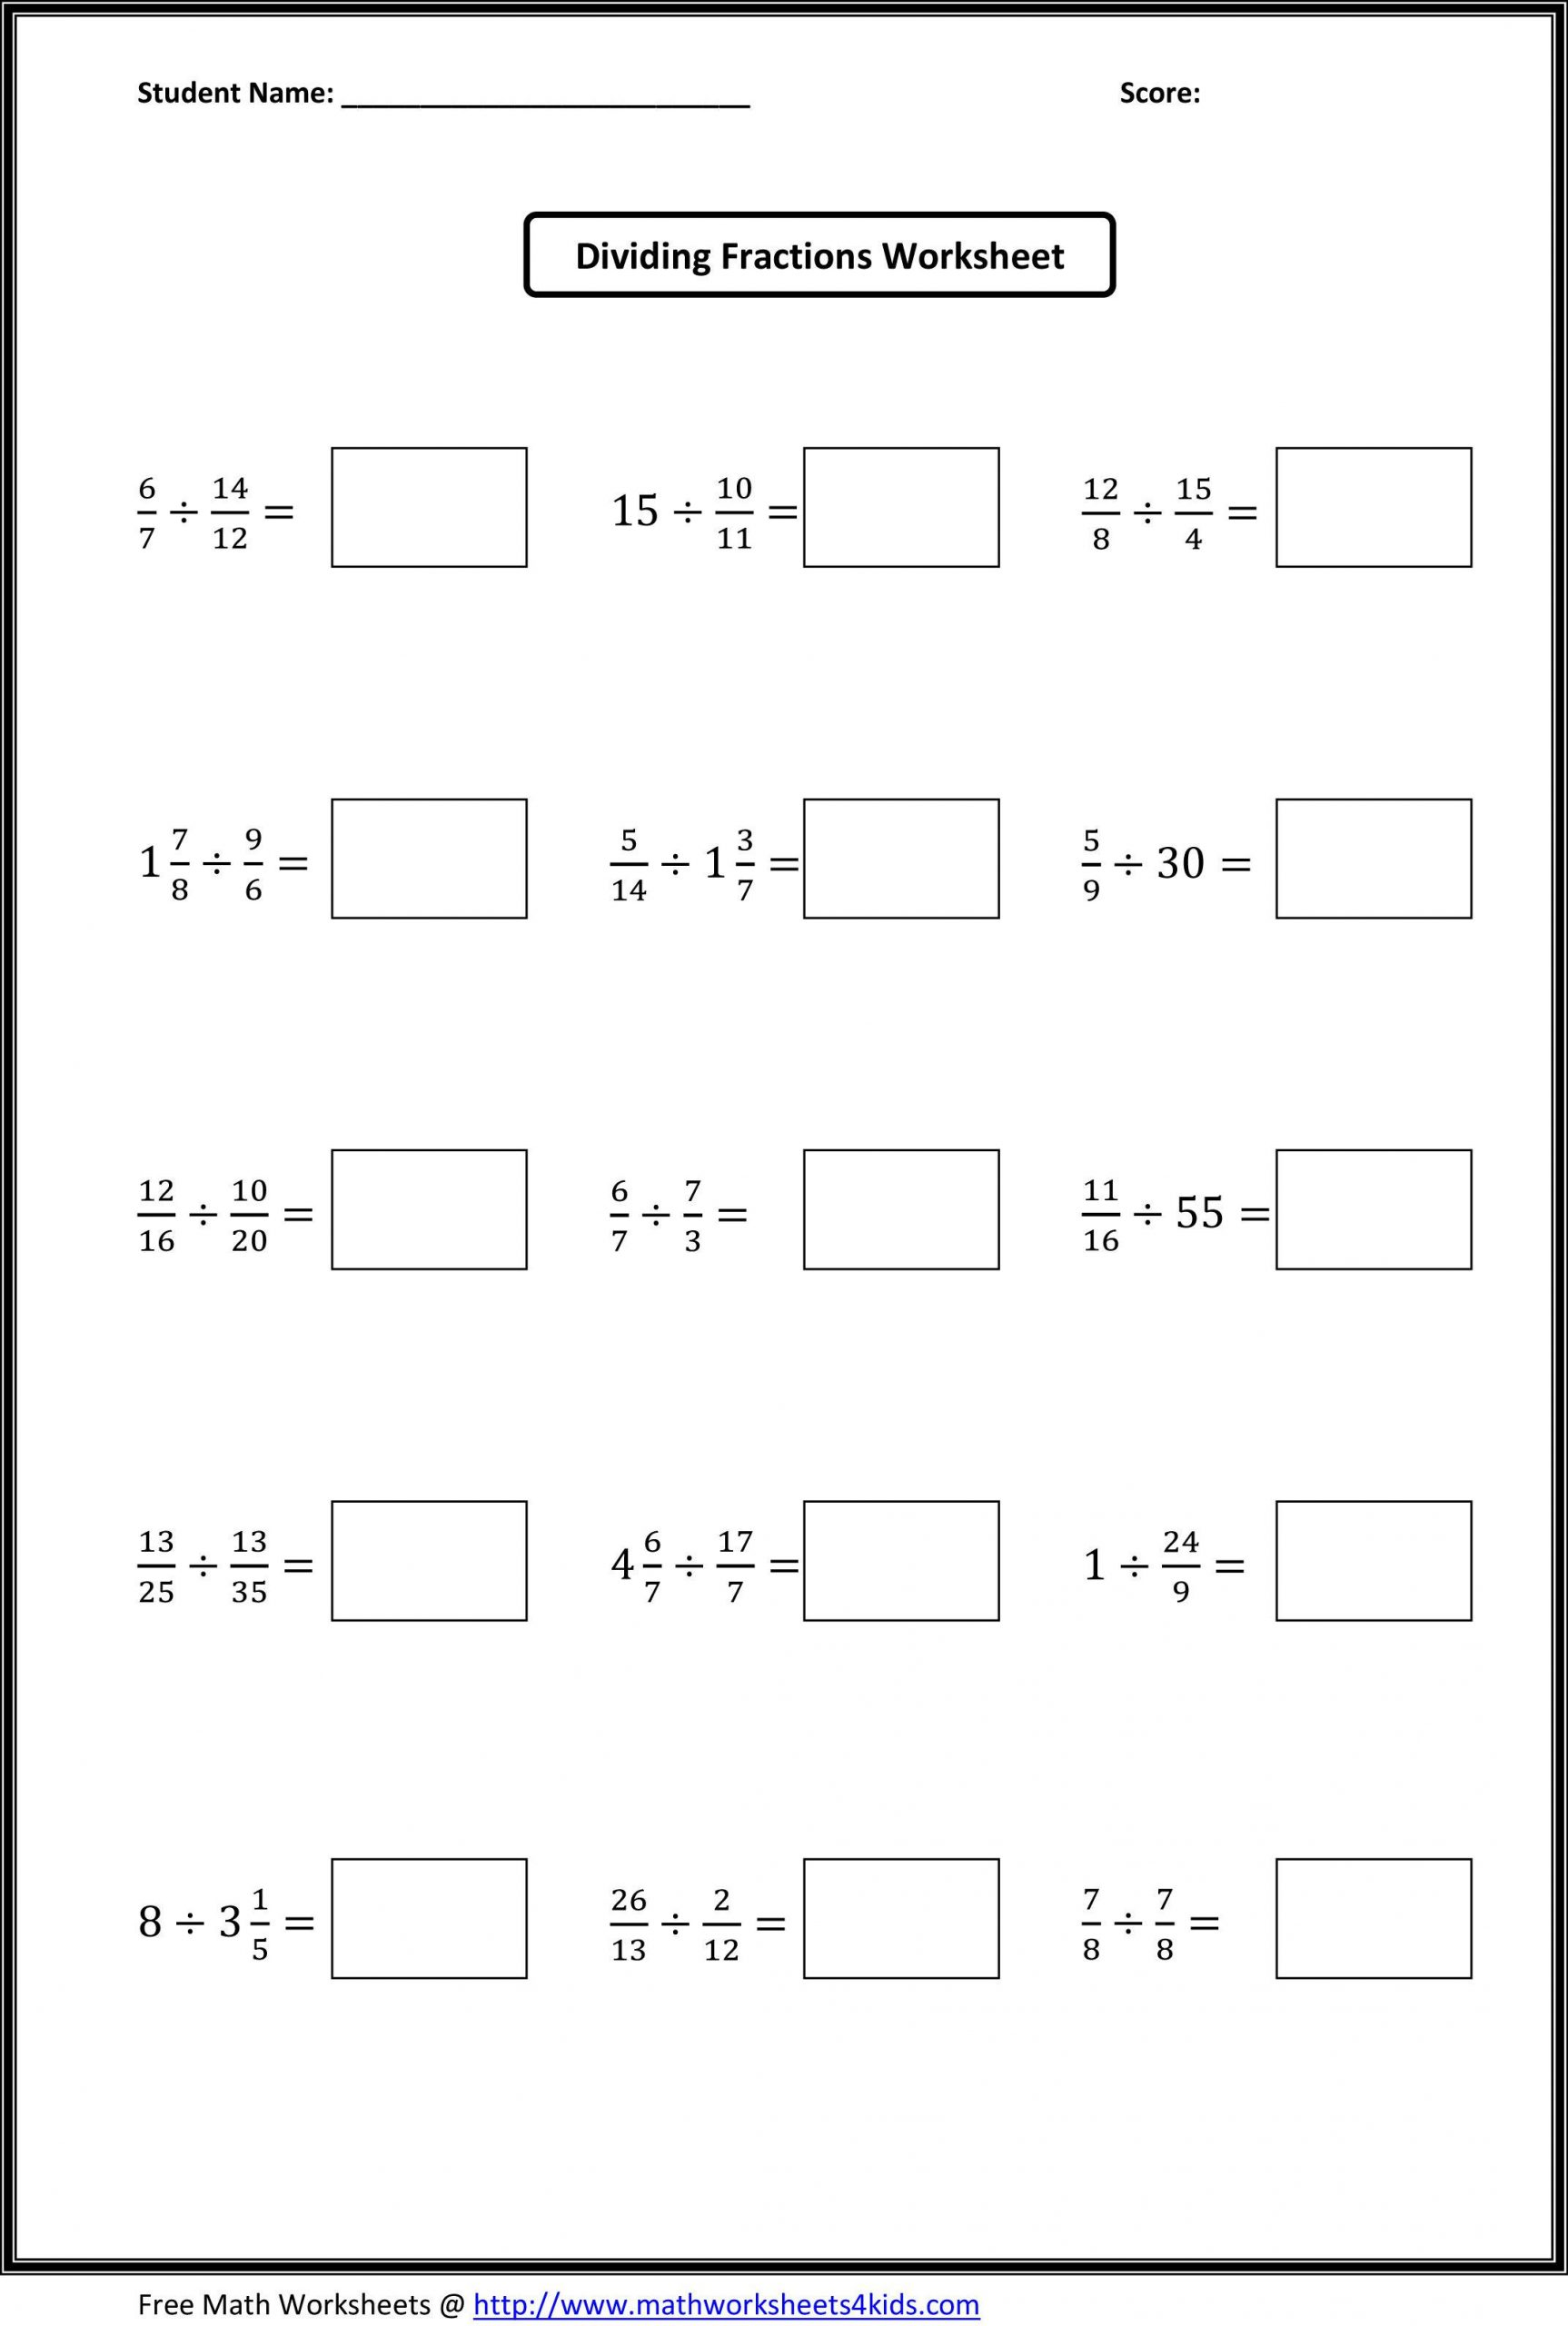 Multiplying Fractions Worksheet 6th Grade Dividing Fractions Worksheets